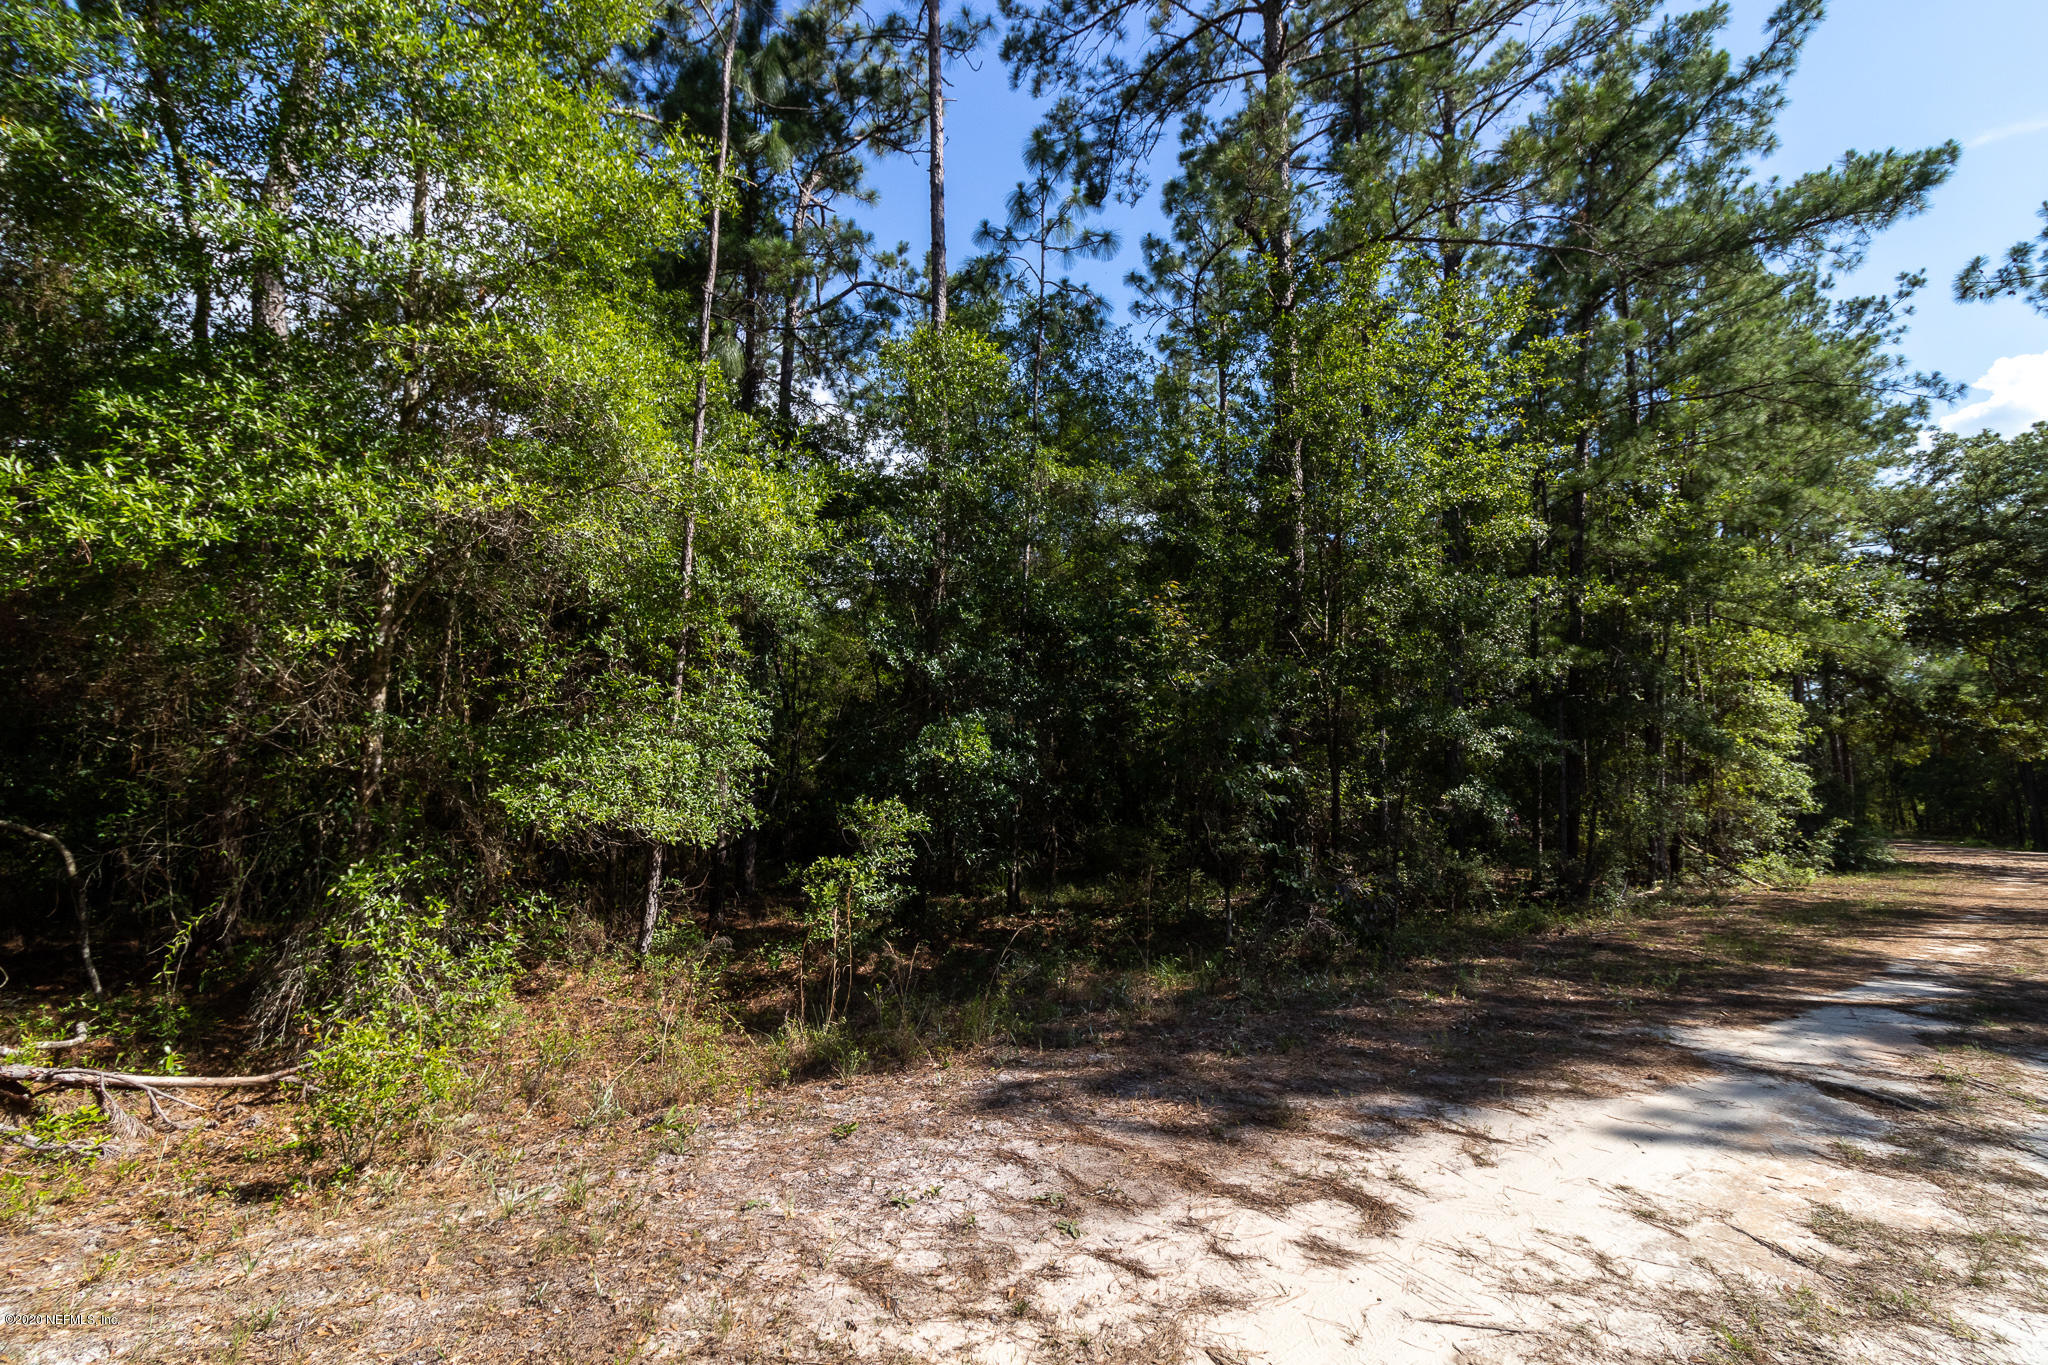 0 PINE CONE, MELROSE, FLORIDA 32666, ,Vacant land,For sale,PINE CONE,1055331